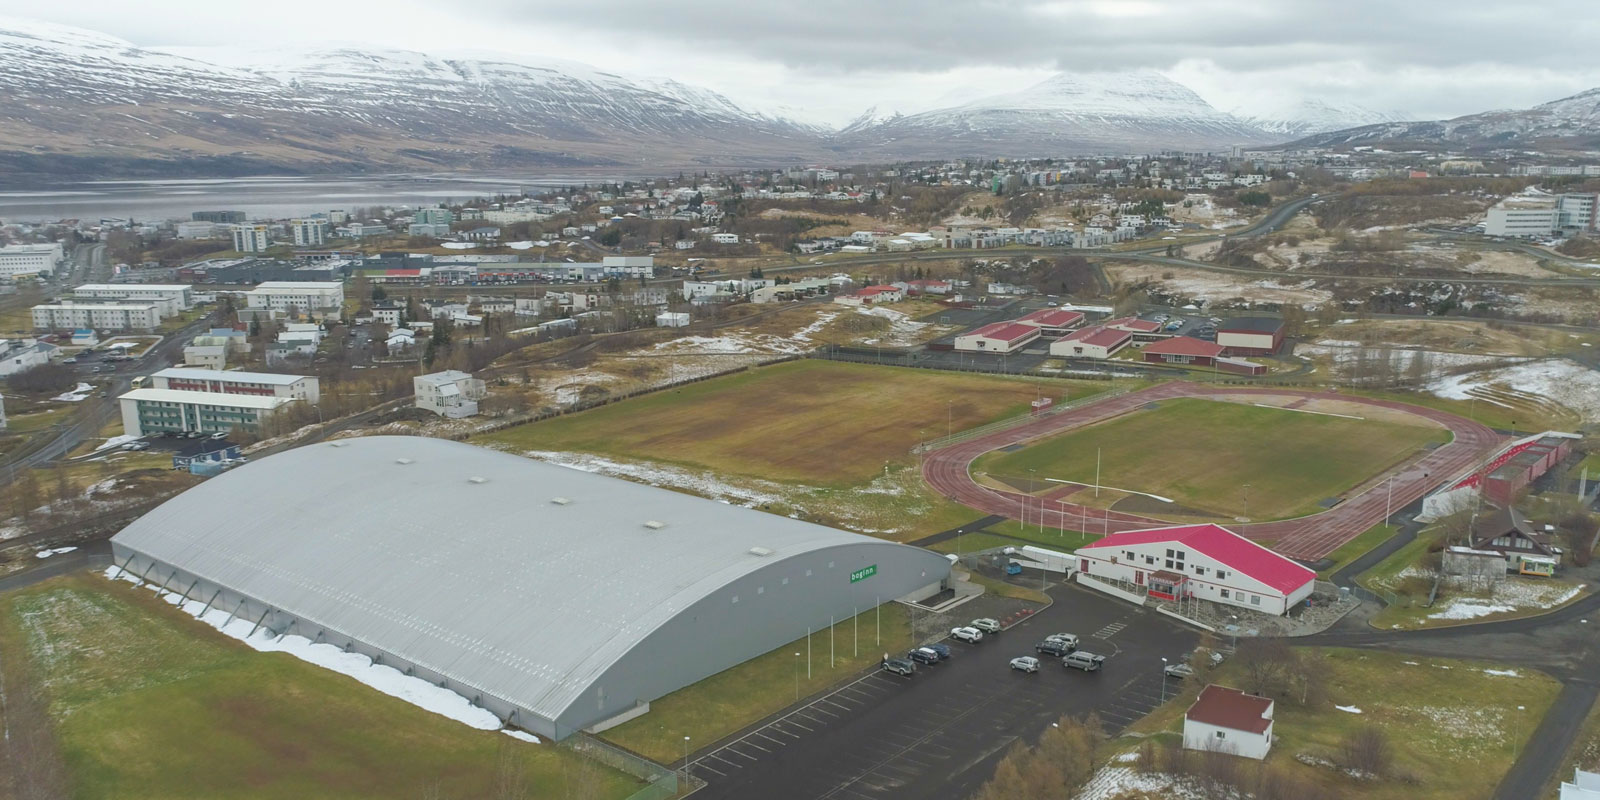 Iceland has built state-of-the-art training facilities as part of its rise as a soccer power